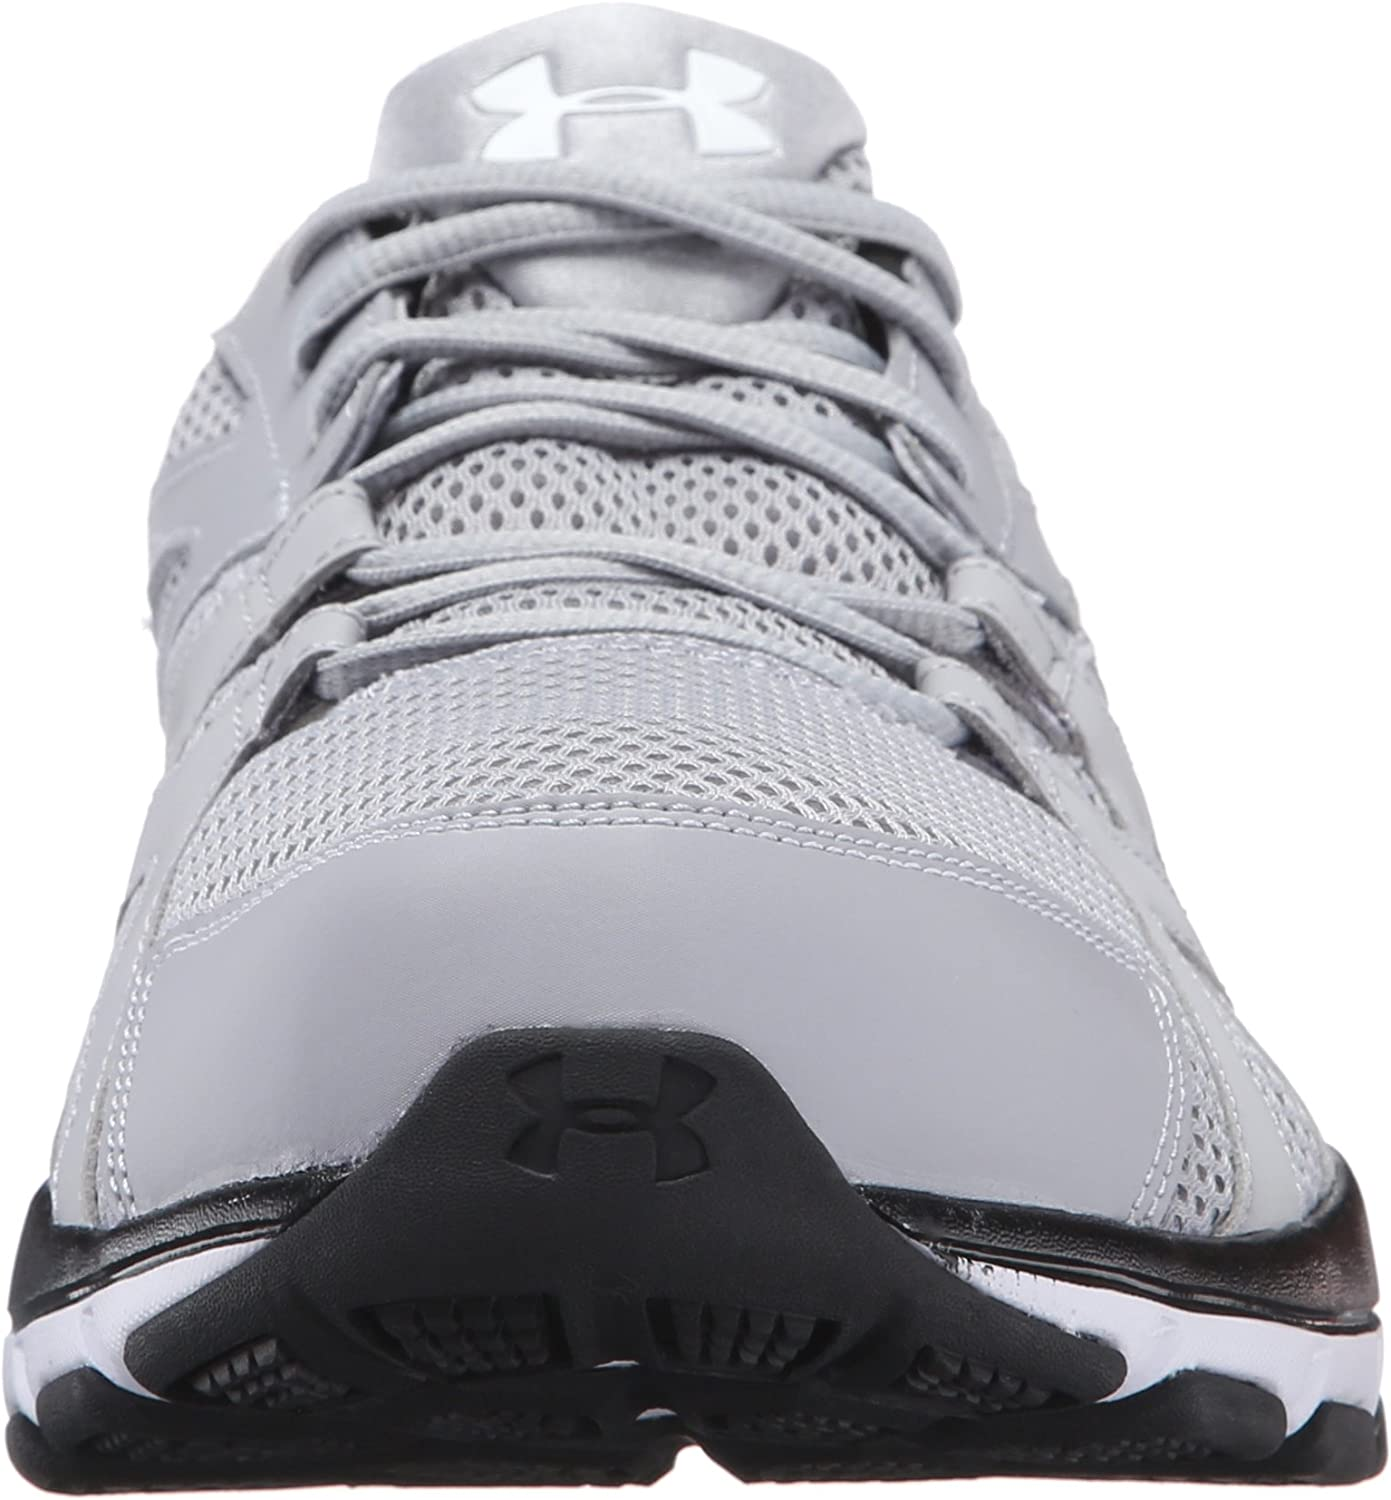 UNDER ARMOUR UA STRIVE 6 EXTRA WIDE 4E EEEE BLACK//GRAY//WHITE TRAINER MEN SIZES